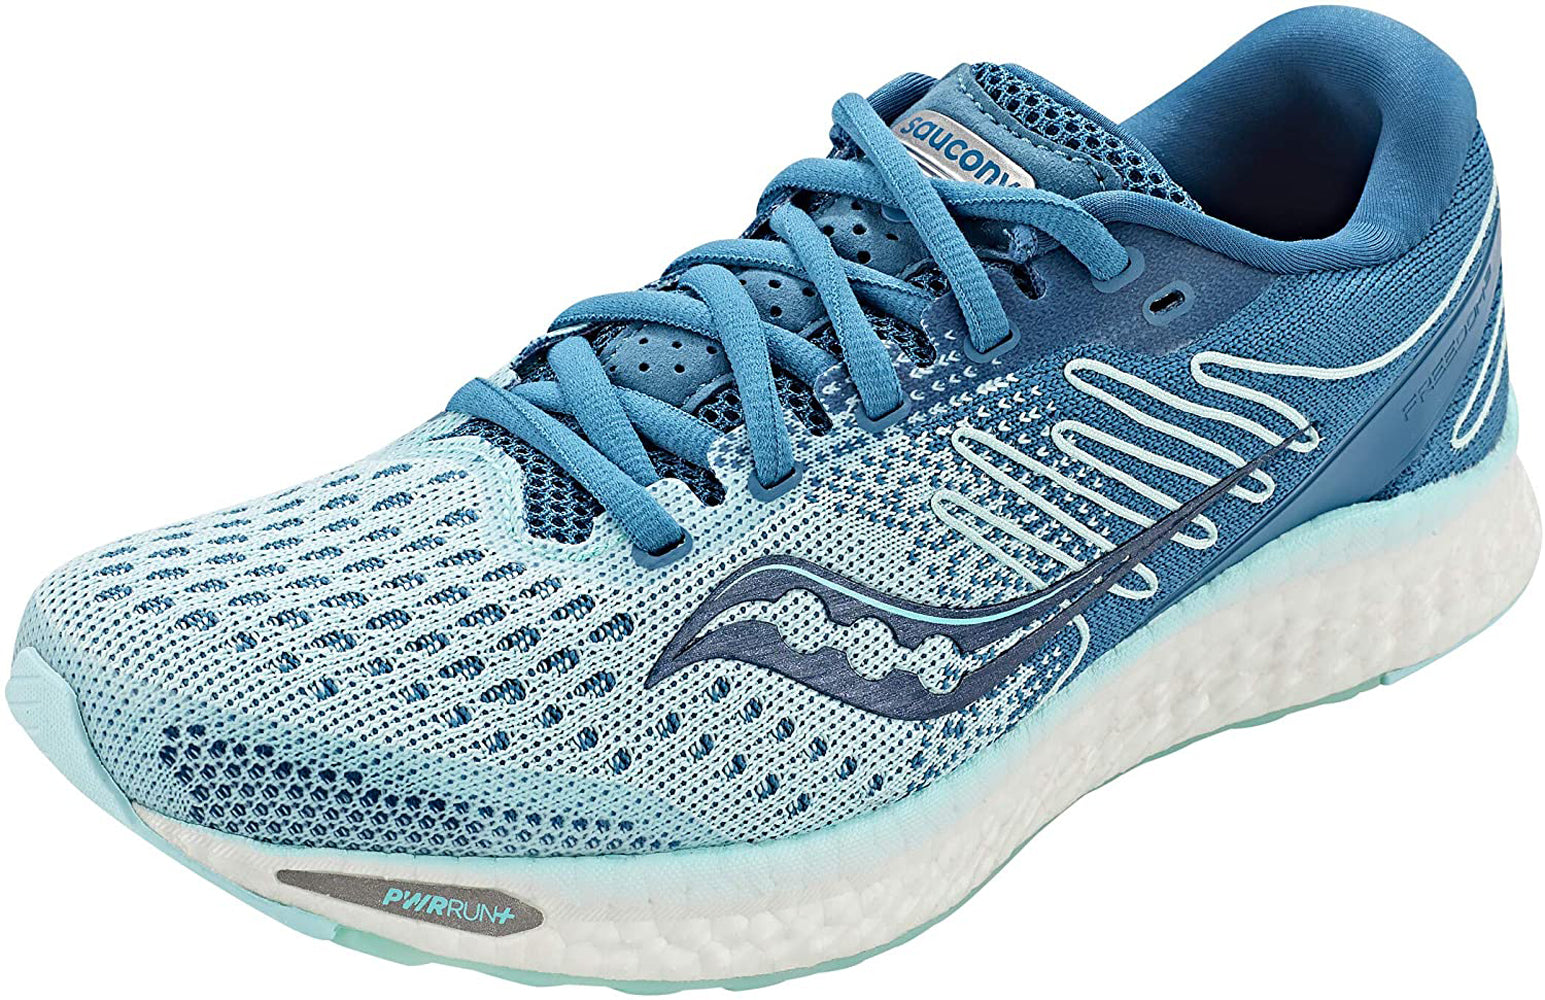 Saucony Women's Freedom 3 Running Shoe in Aqua Blue Side Angle View